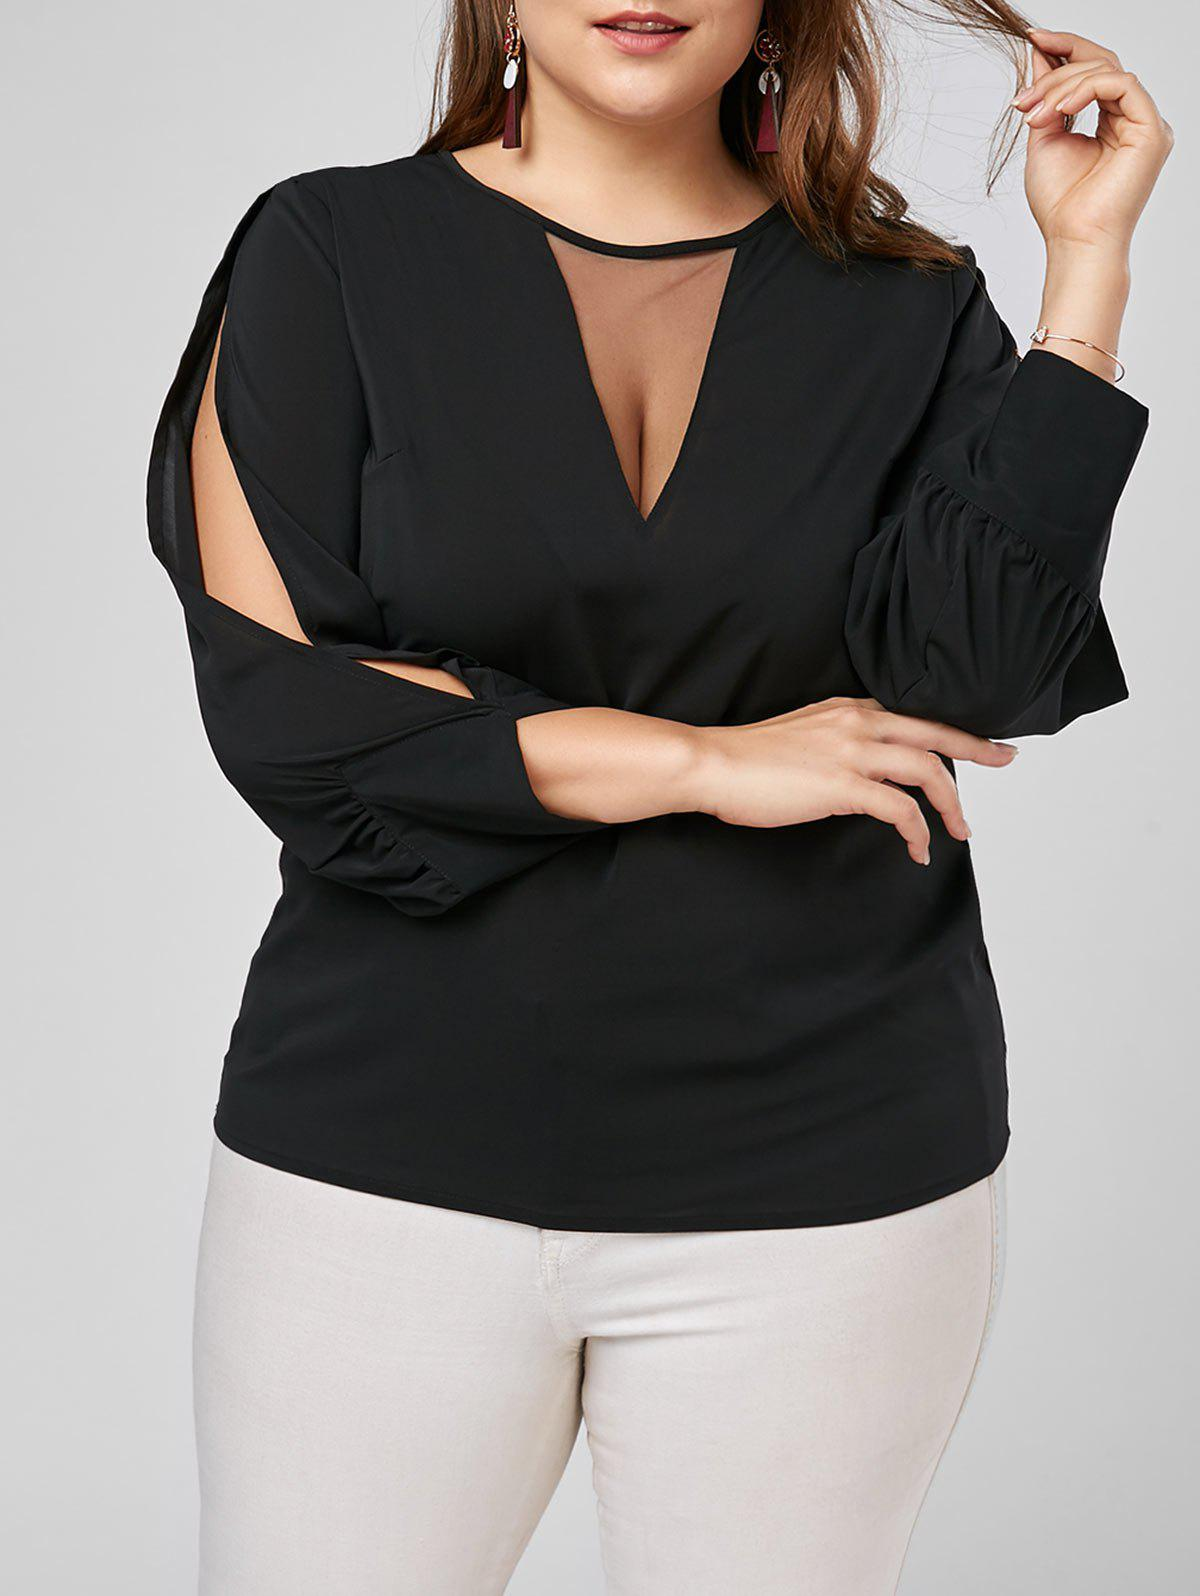 Split Long Sleeve Plus Size Mesh Trim TopWOMEN<br><br>Size: 3XL; Color: BLACK; Material: Polyester; Shirt Length: Regular; Sleeve Length: Full; Collar: Round Neck; Style: Fashion; Season: Spring,Summer; Pattern Type: Solid; Weight: 0.2200kg; Package Contents: 1 x Top;